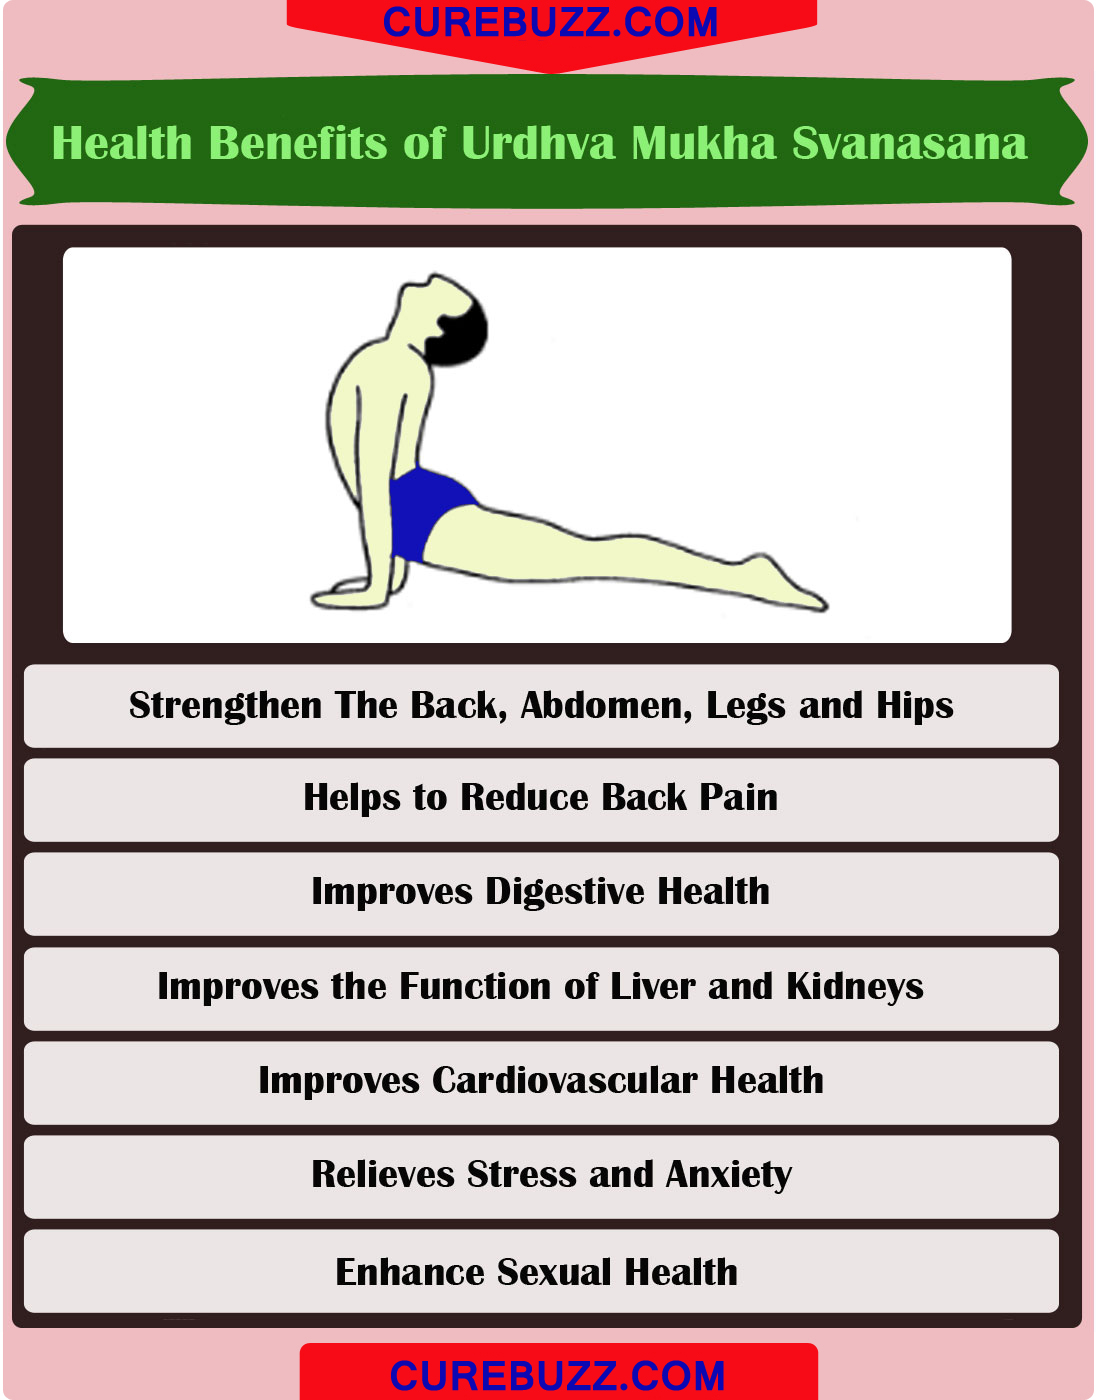 Health benefits of Urdhva Mukha Svanasana